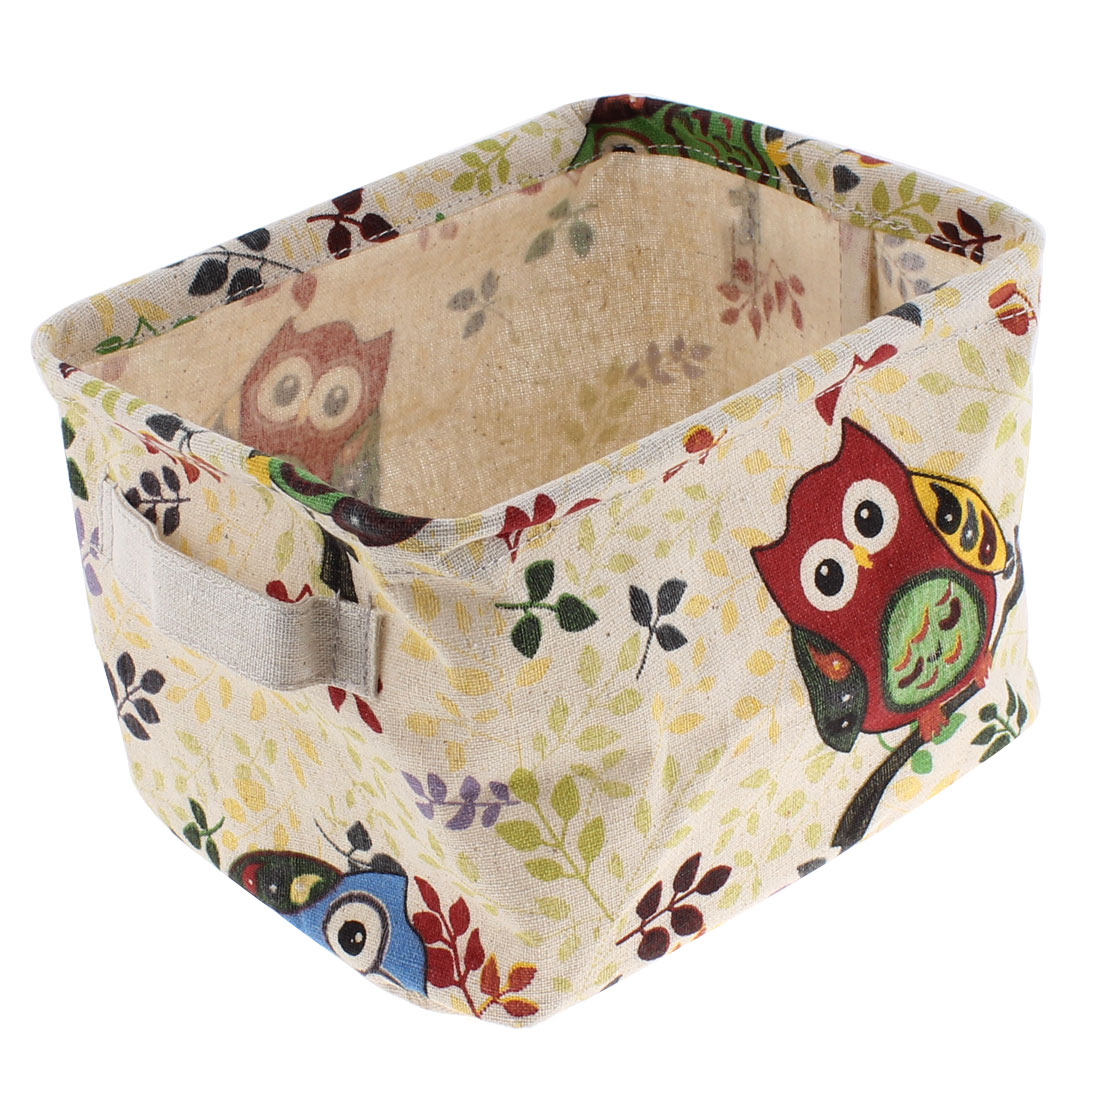 Metal Frame Owl Leaf Pattern Rectangle Shaped Storage Basket Bucket Container